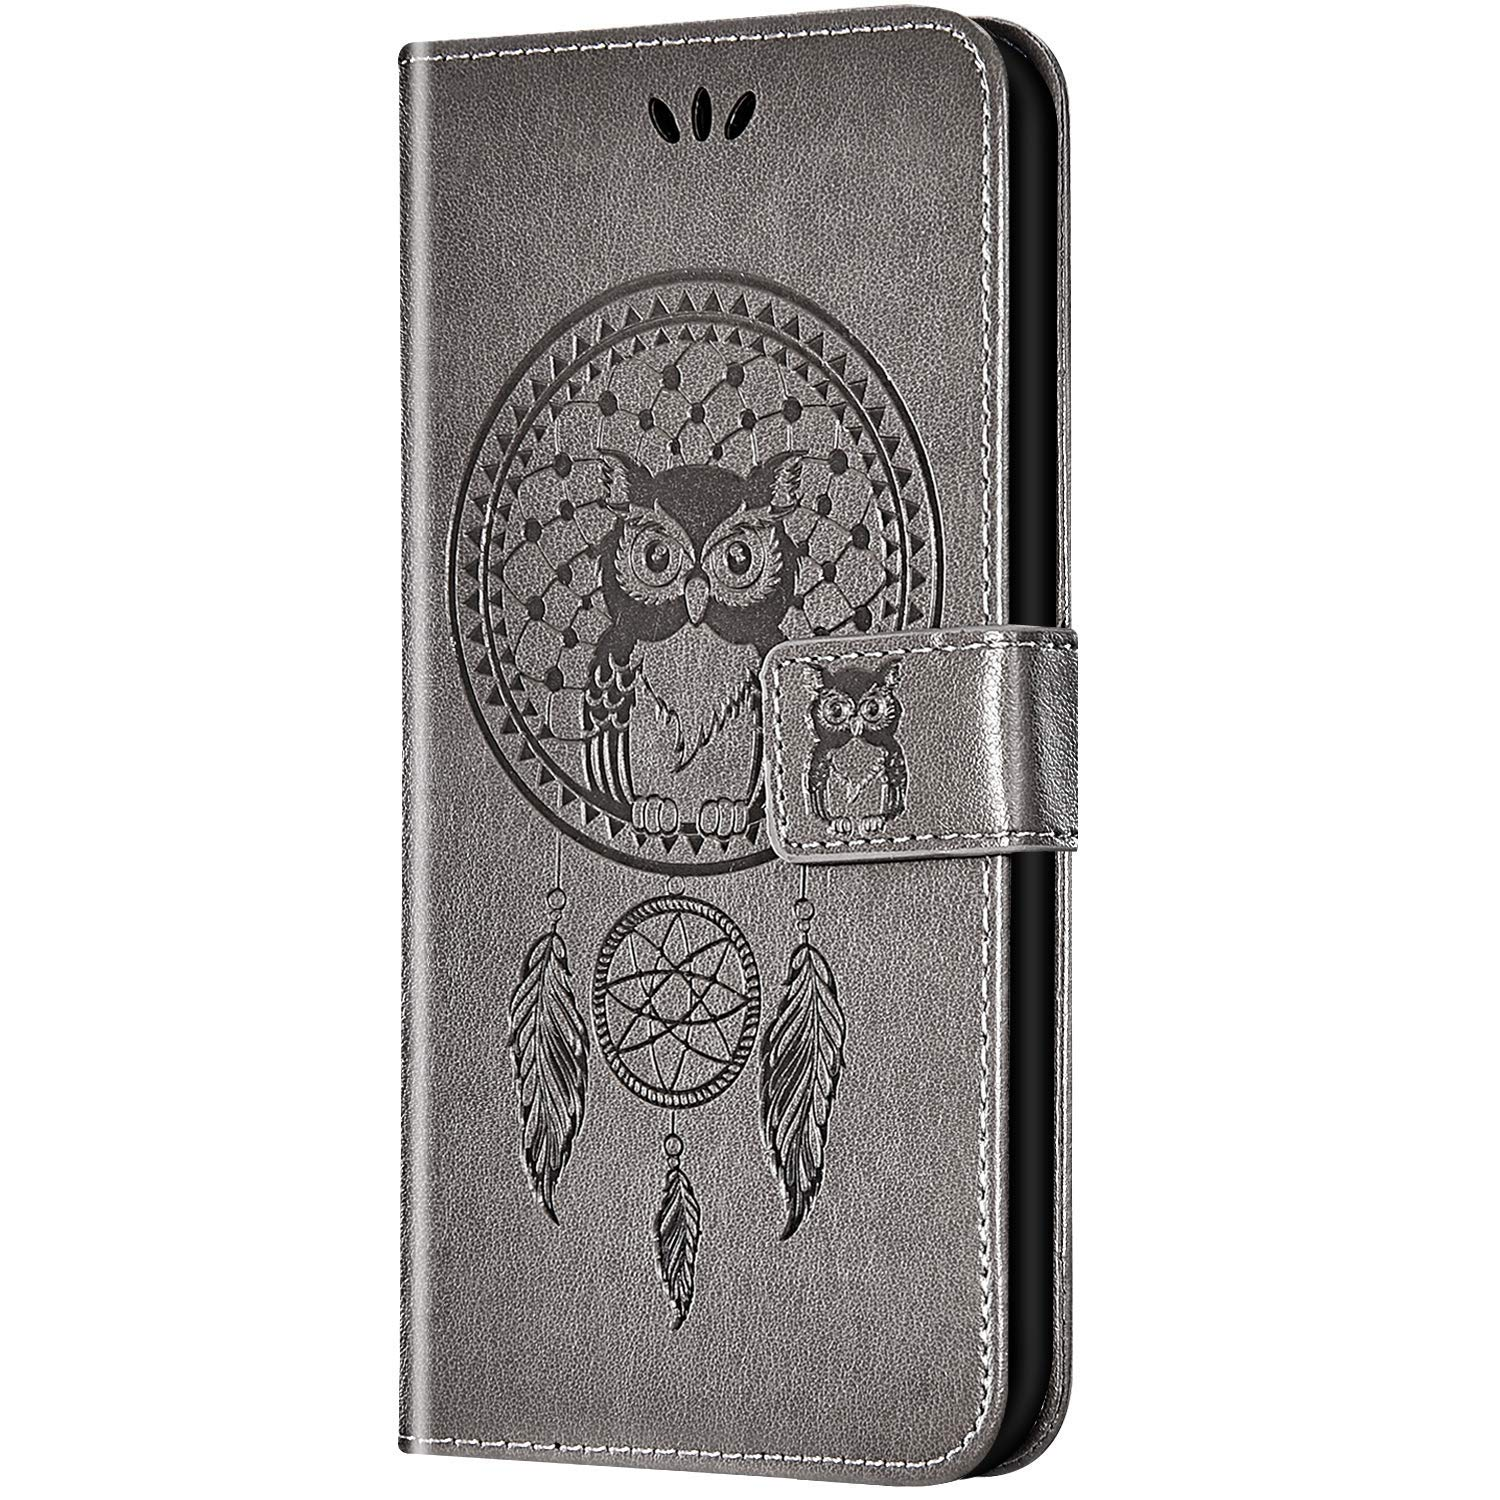 Case for Xiaomi Redmi Note 7 Flip Case Ultra Slim PU Leather Wallet with Card Holder/Slot and Magnetic Closure Shockproof Cartoon Animal Owl Embossed Protective Cover for Xiaomi Redmi Note 7,Gray by ikasus